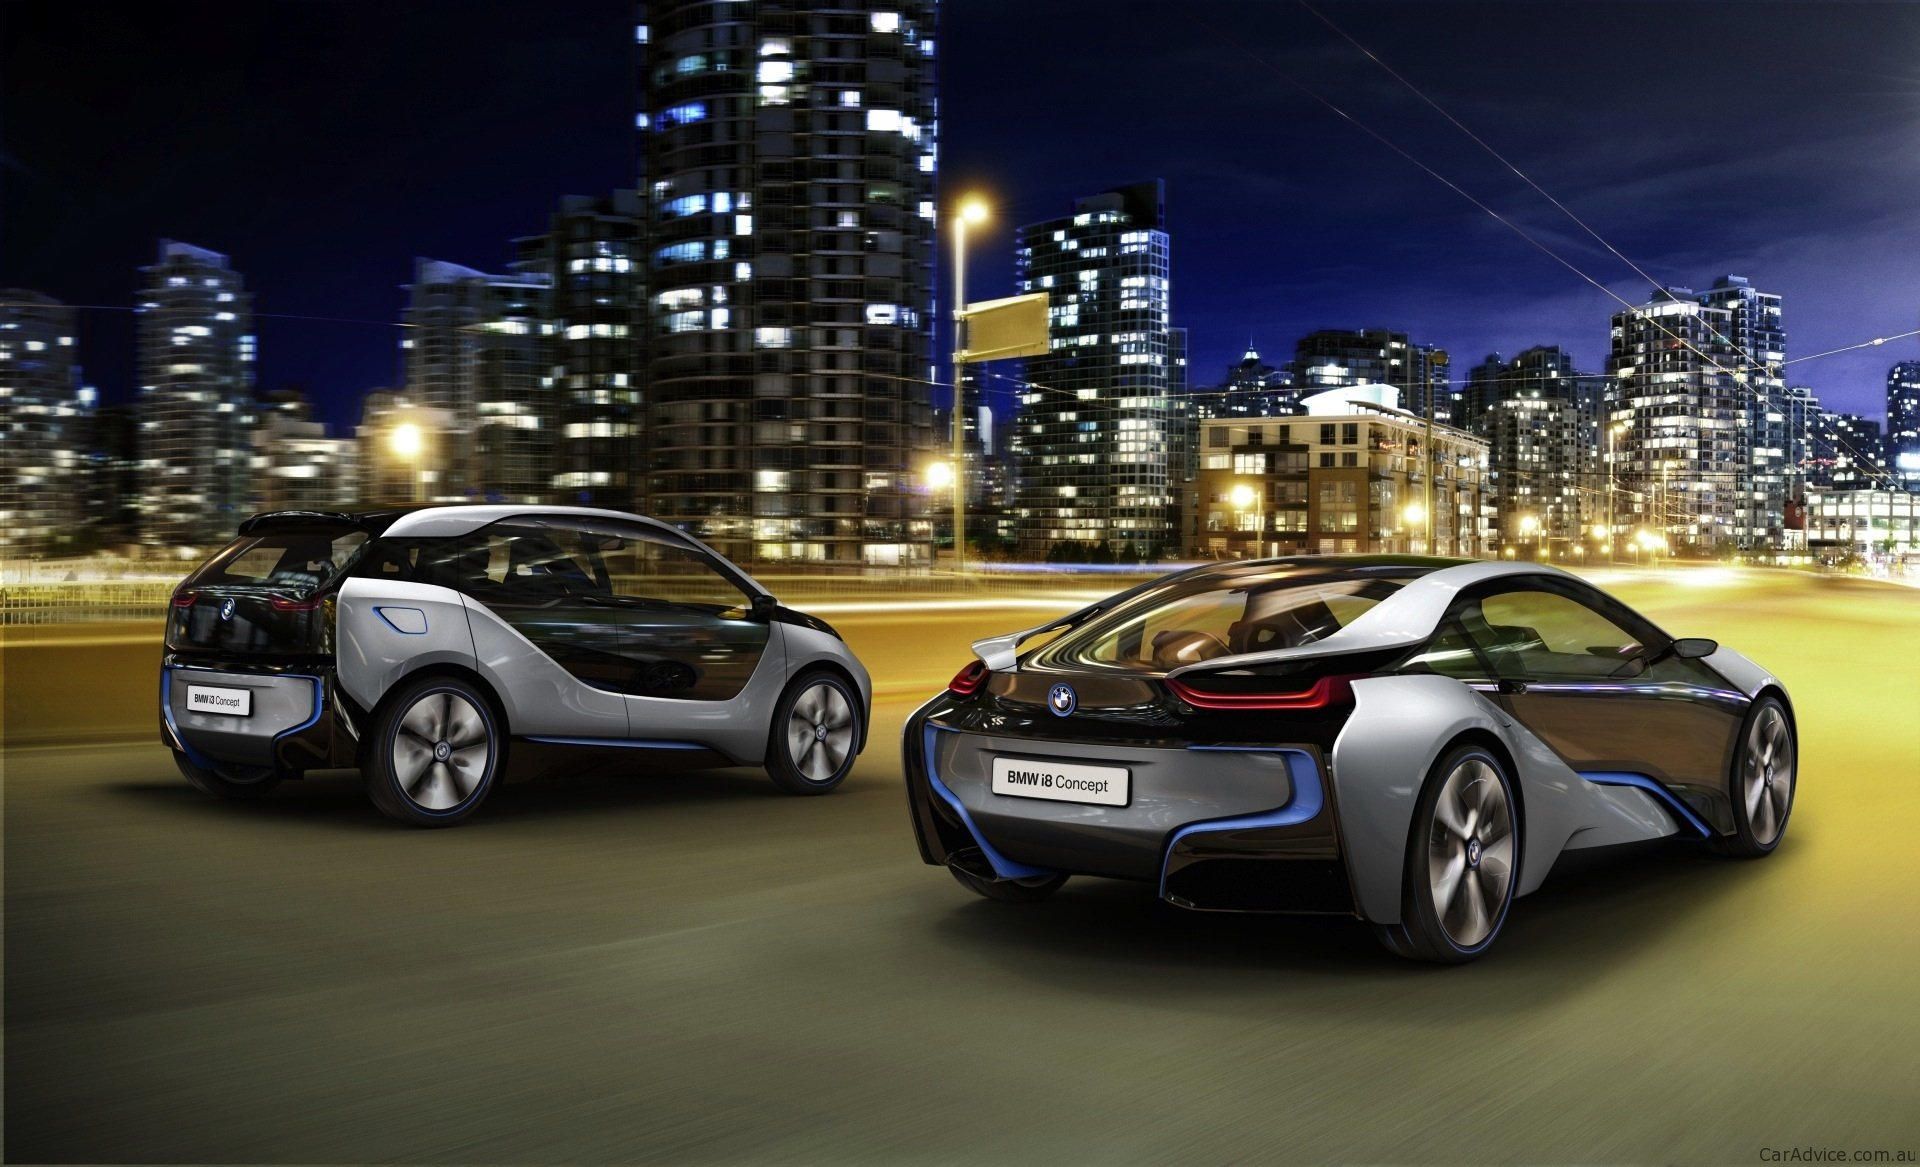 Toyota And BMW Confirm Alliance: Diesels For Japan, Hybrid Tech For Germany